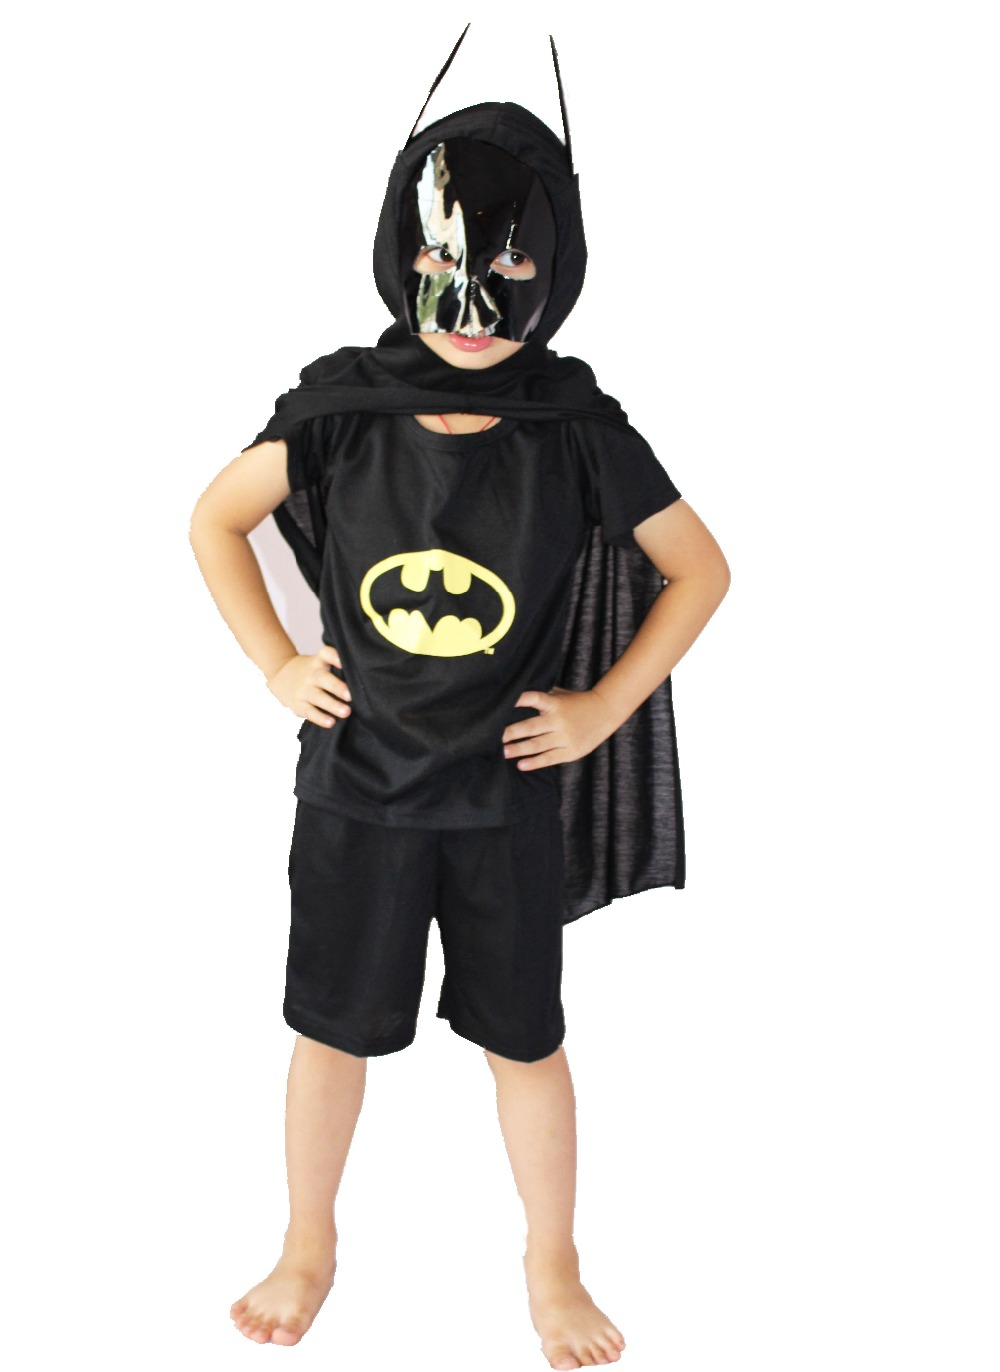 3 - 8 years modal short sleeve three-piece bo's batman model clothing leisure wear,kid Cosplay Role-playing,GHOST